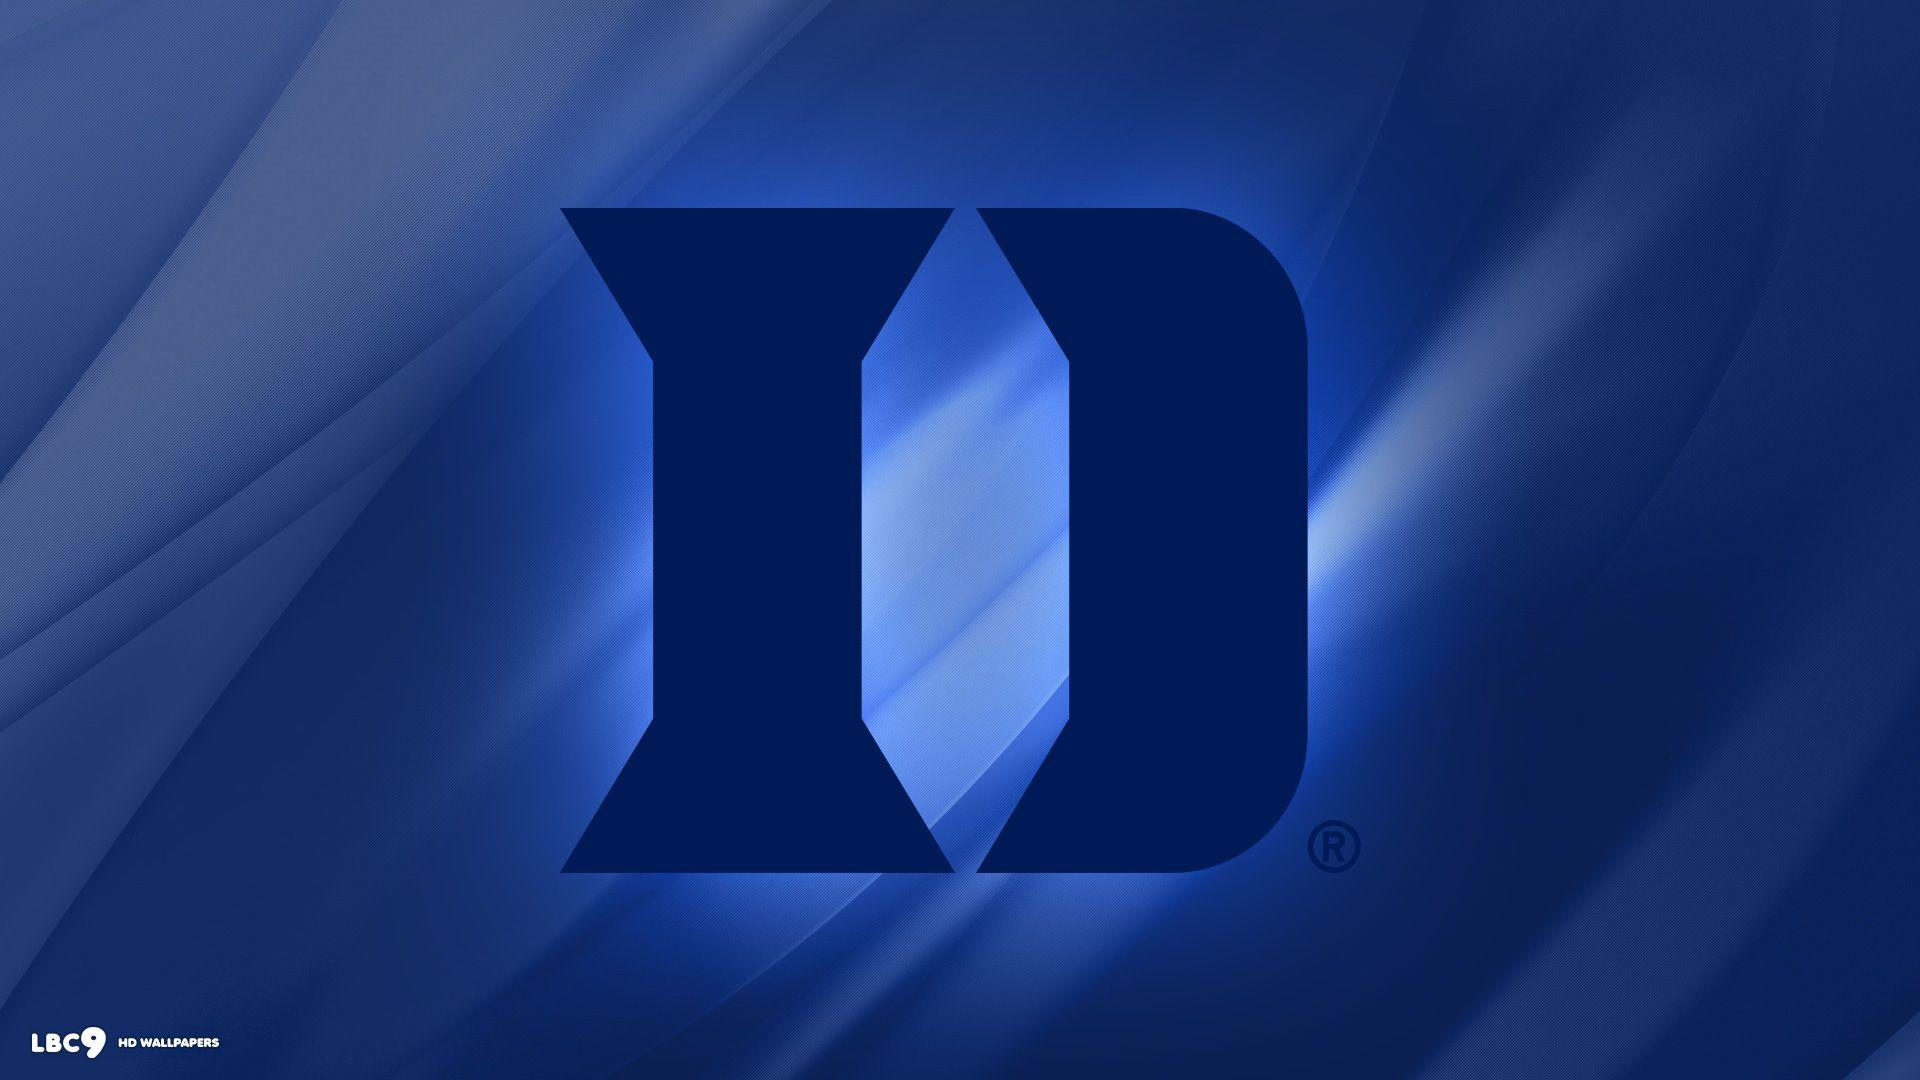 Duke Wallpapers - Wallpaper Cave